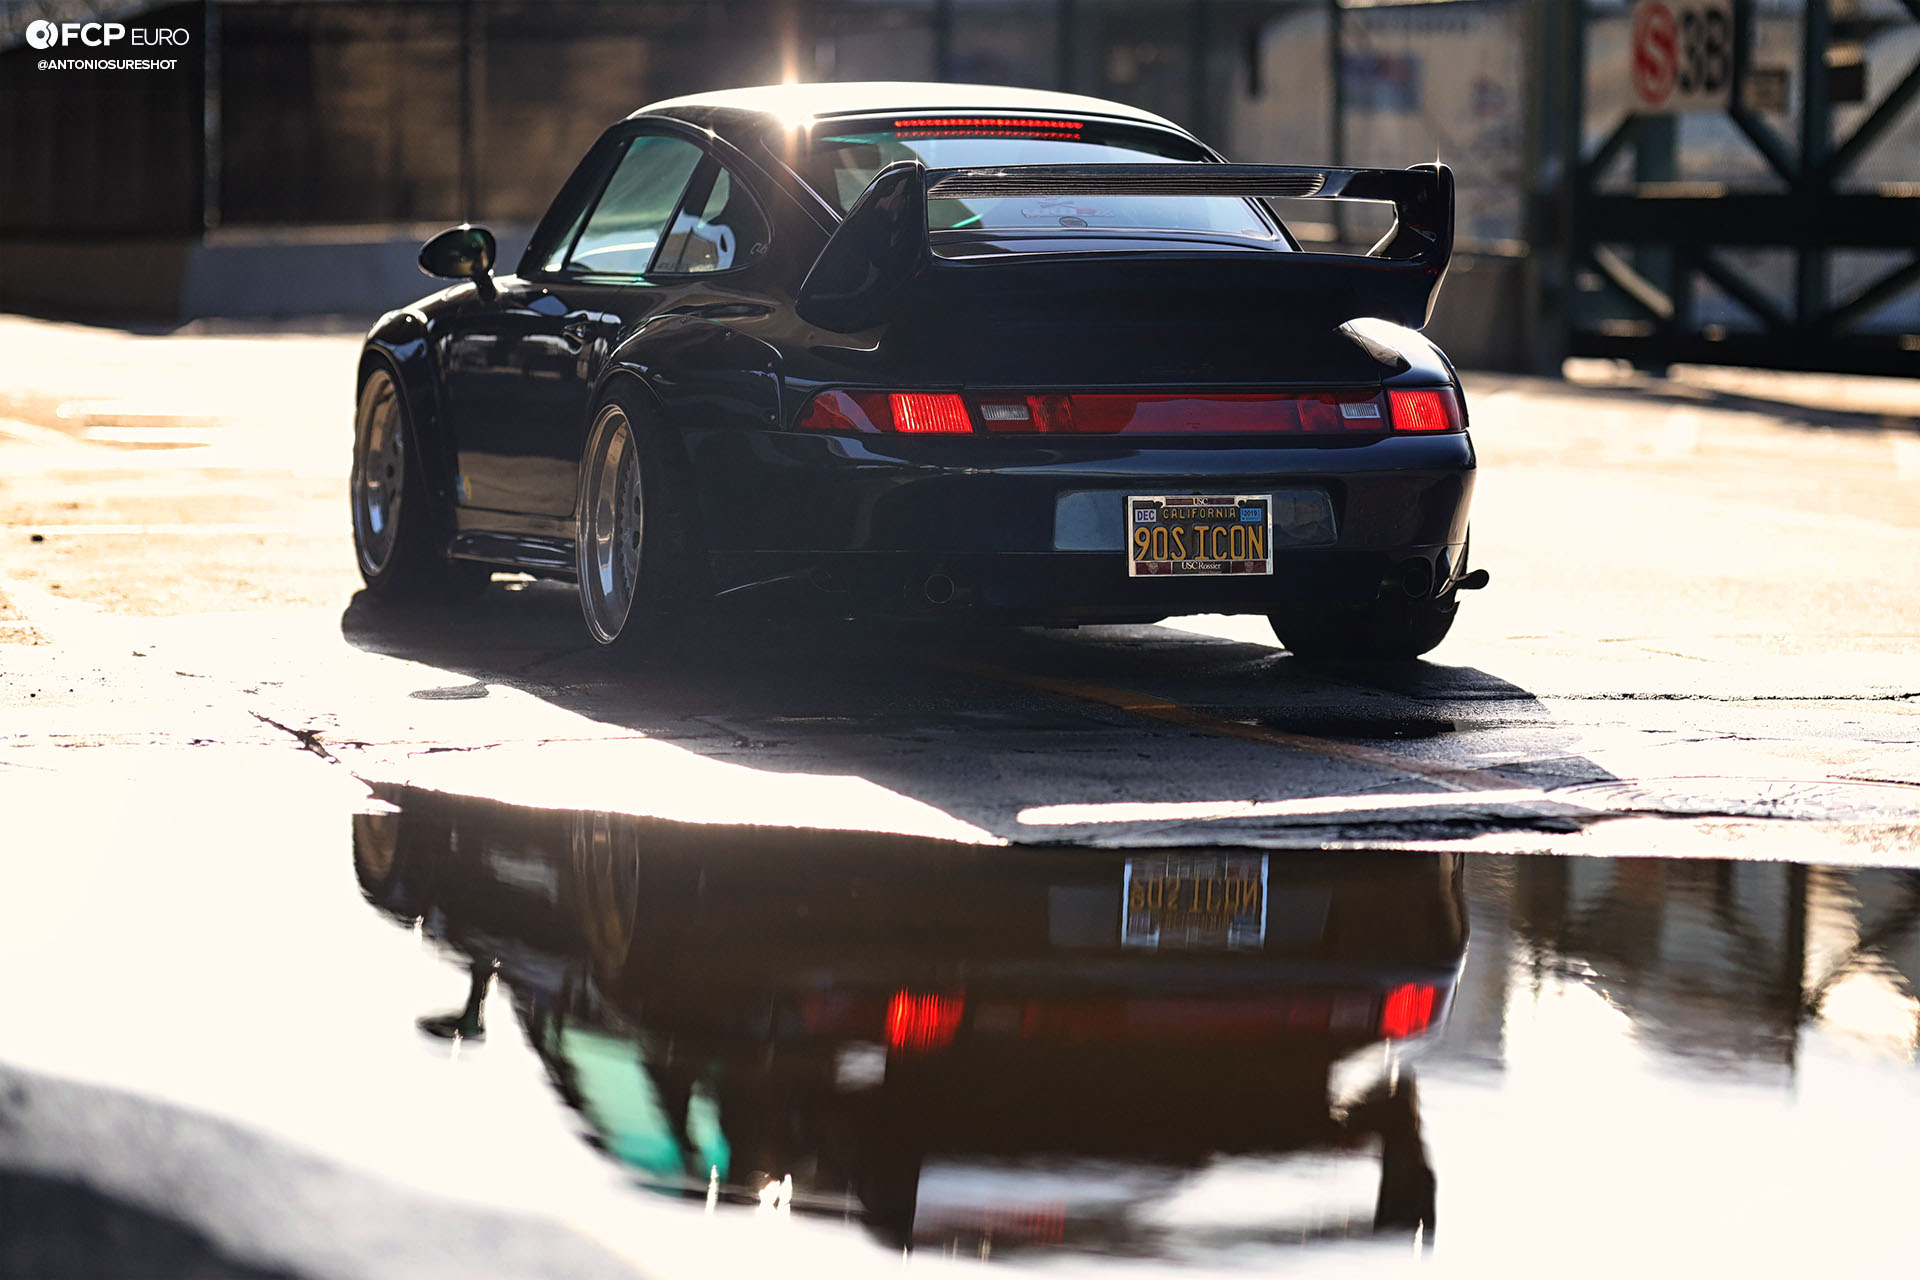 1996 Porsche 911 Carrera 993 RWB rear 3/4